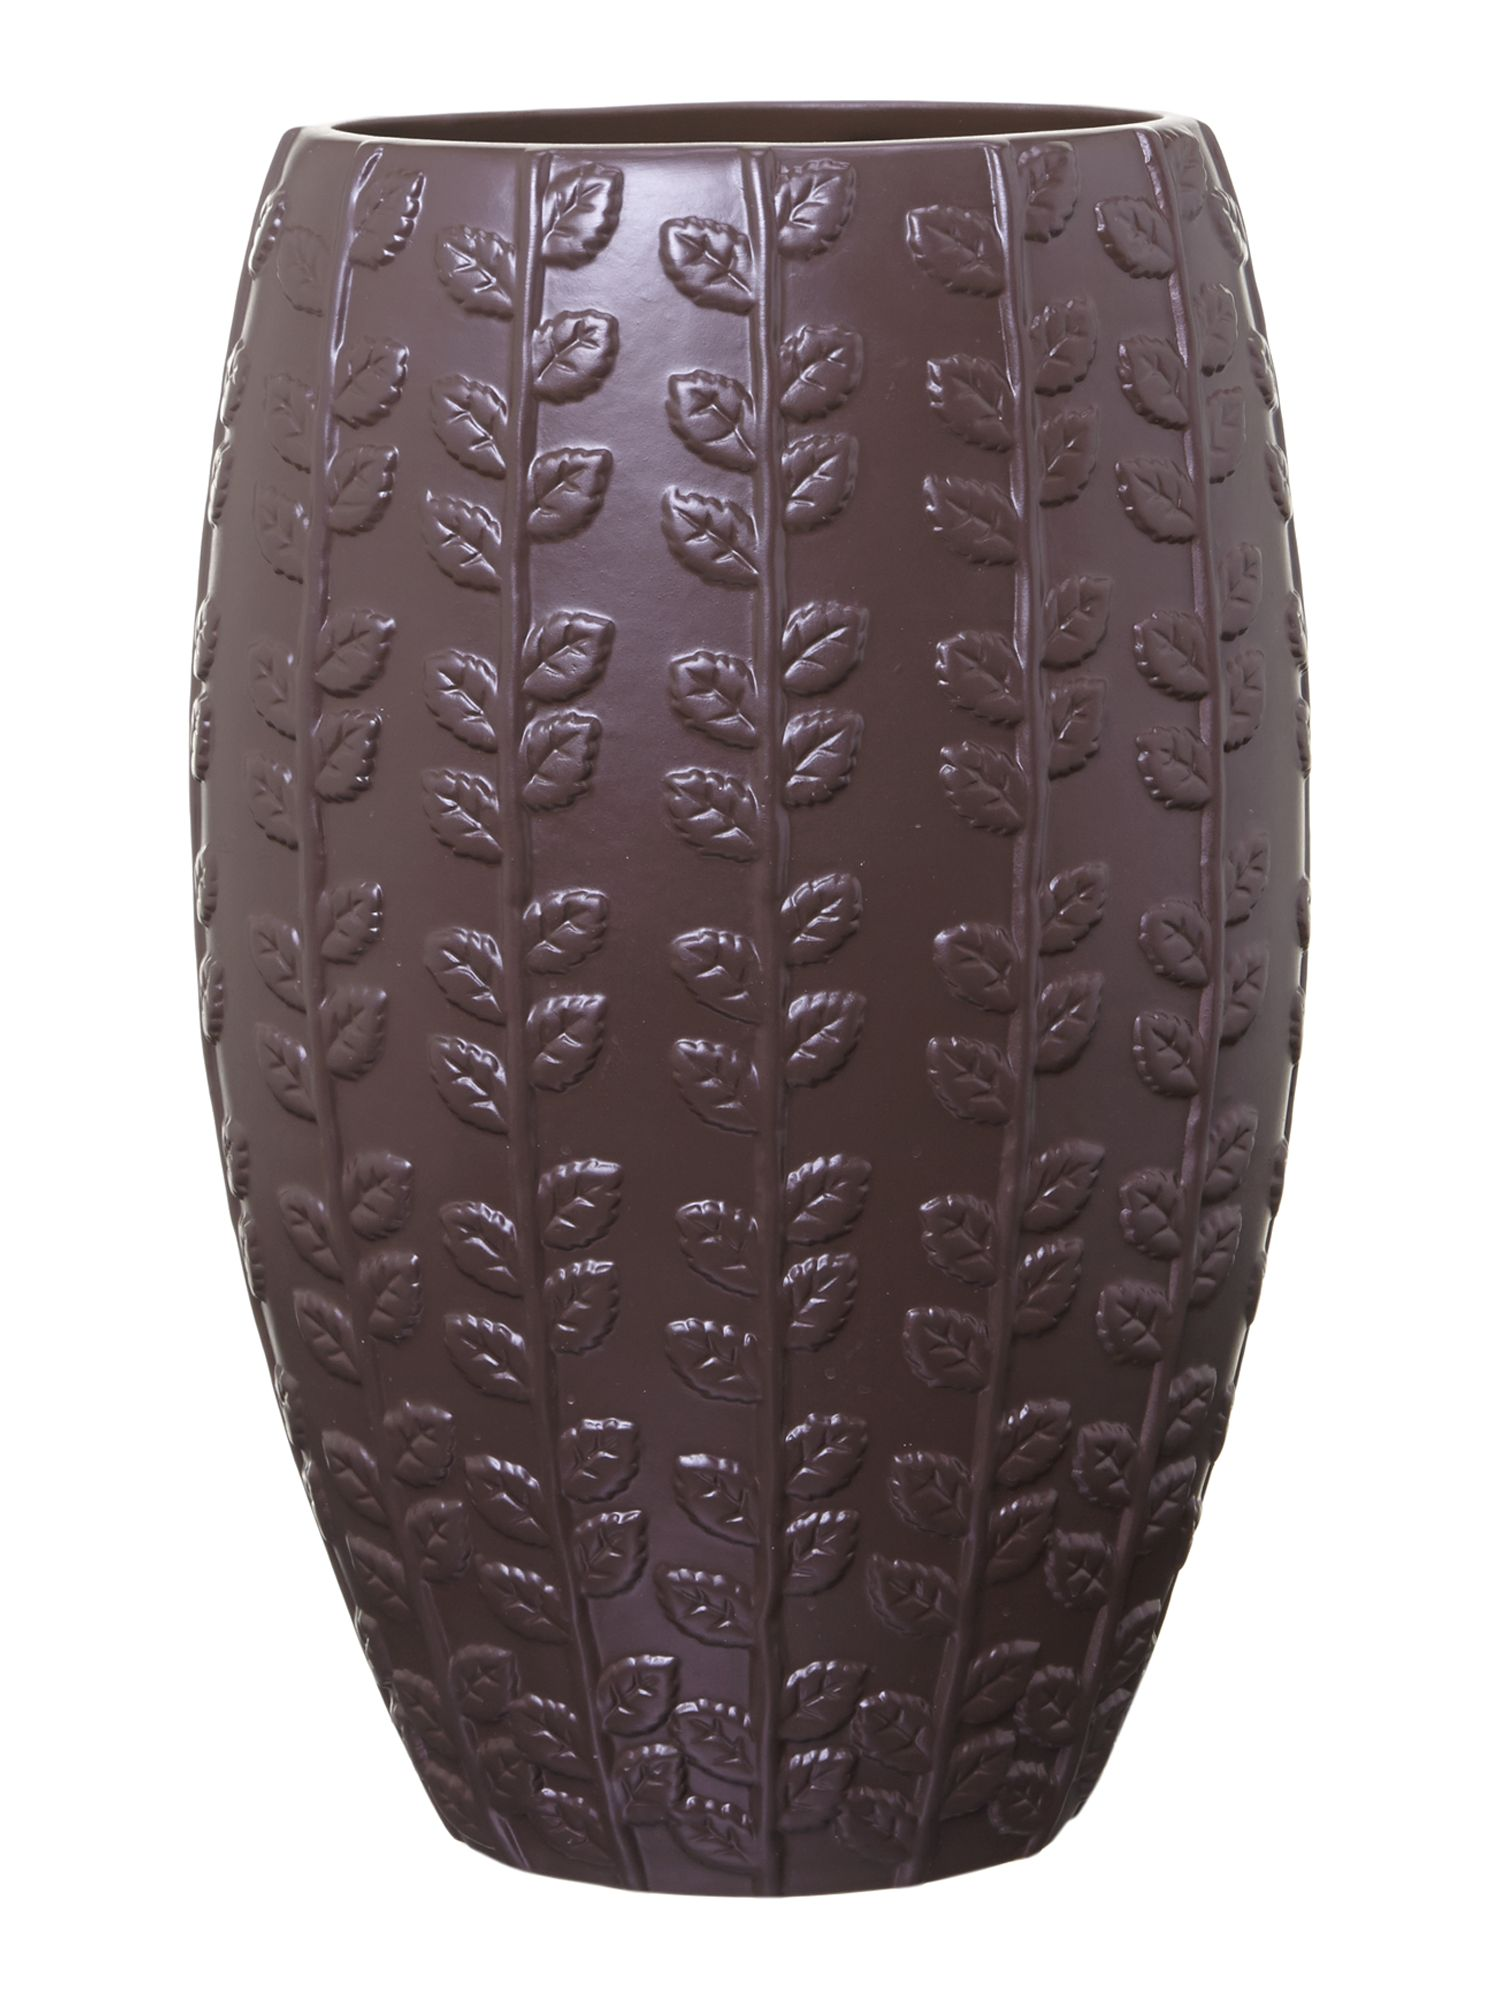 Brown embossed leaf design vase